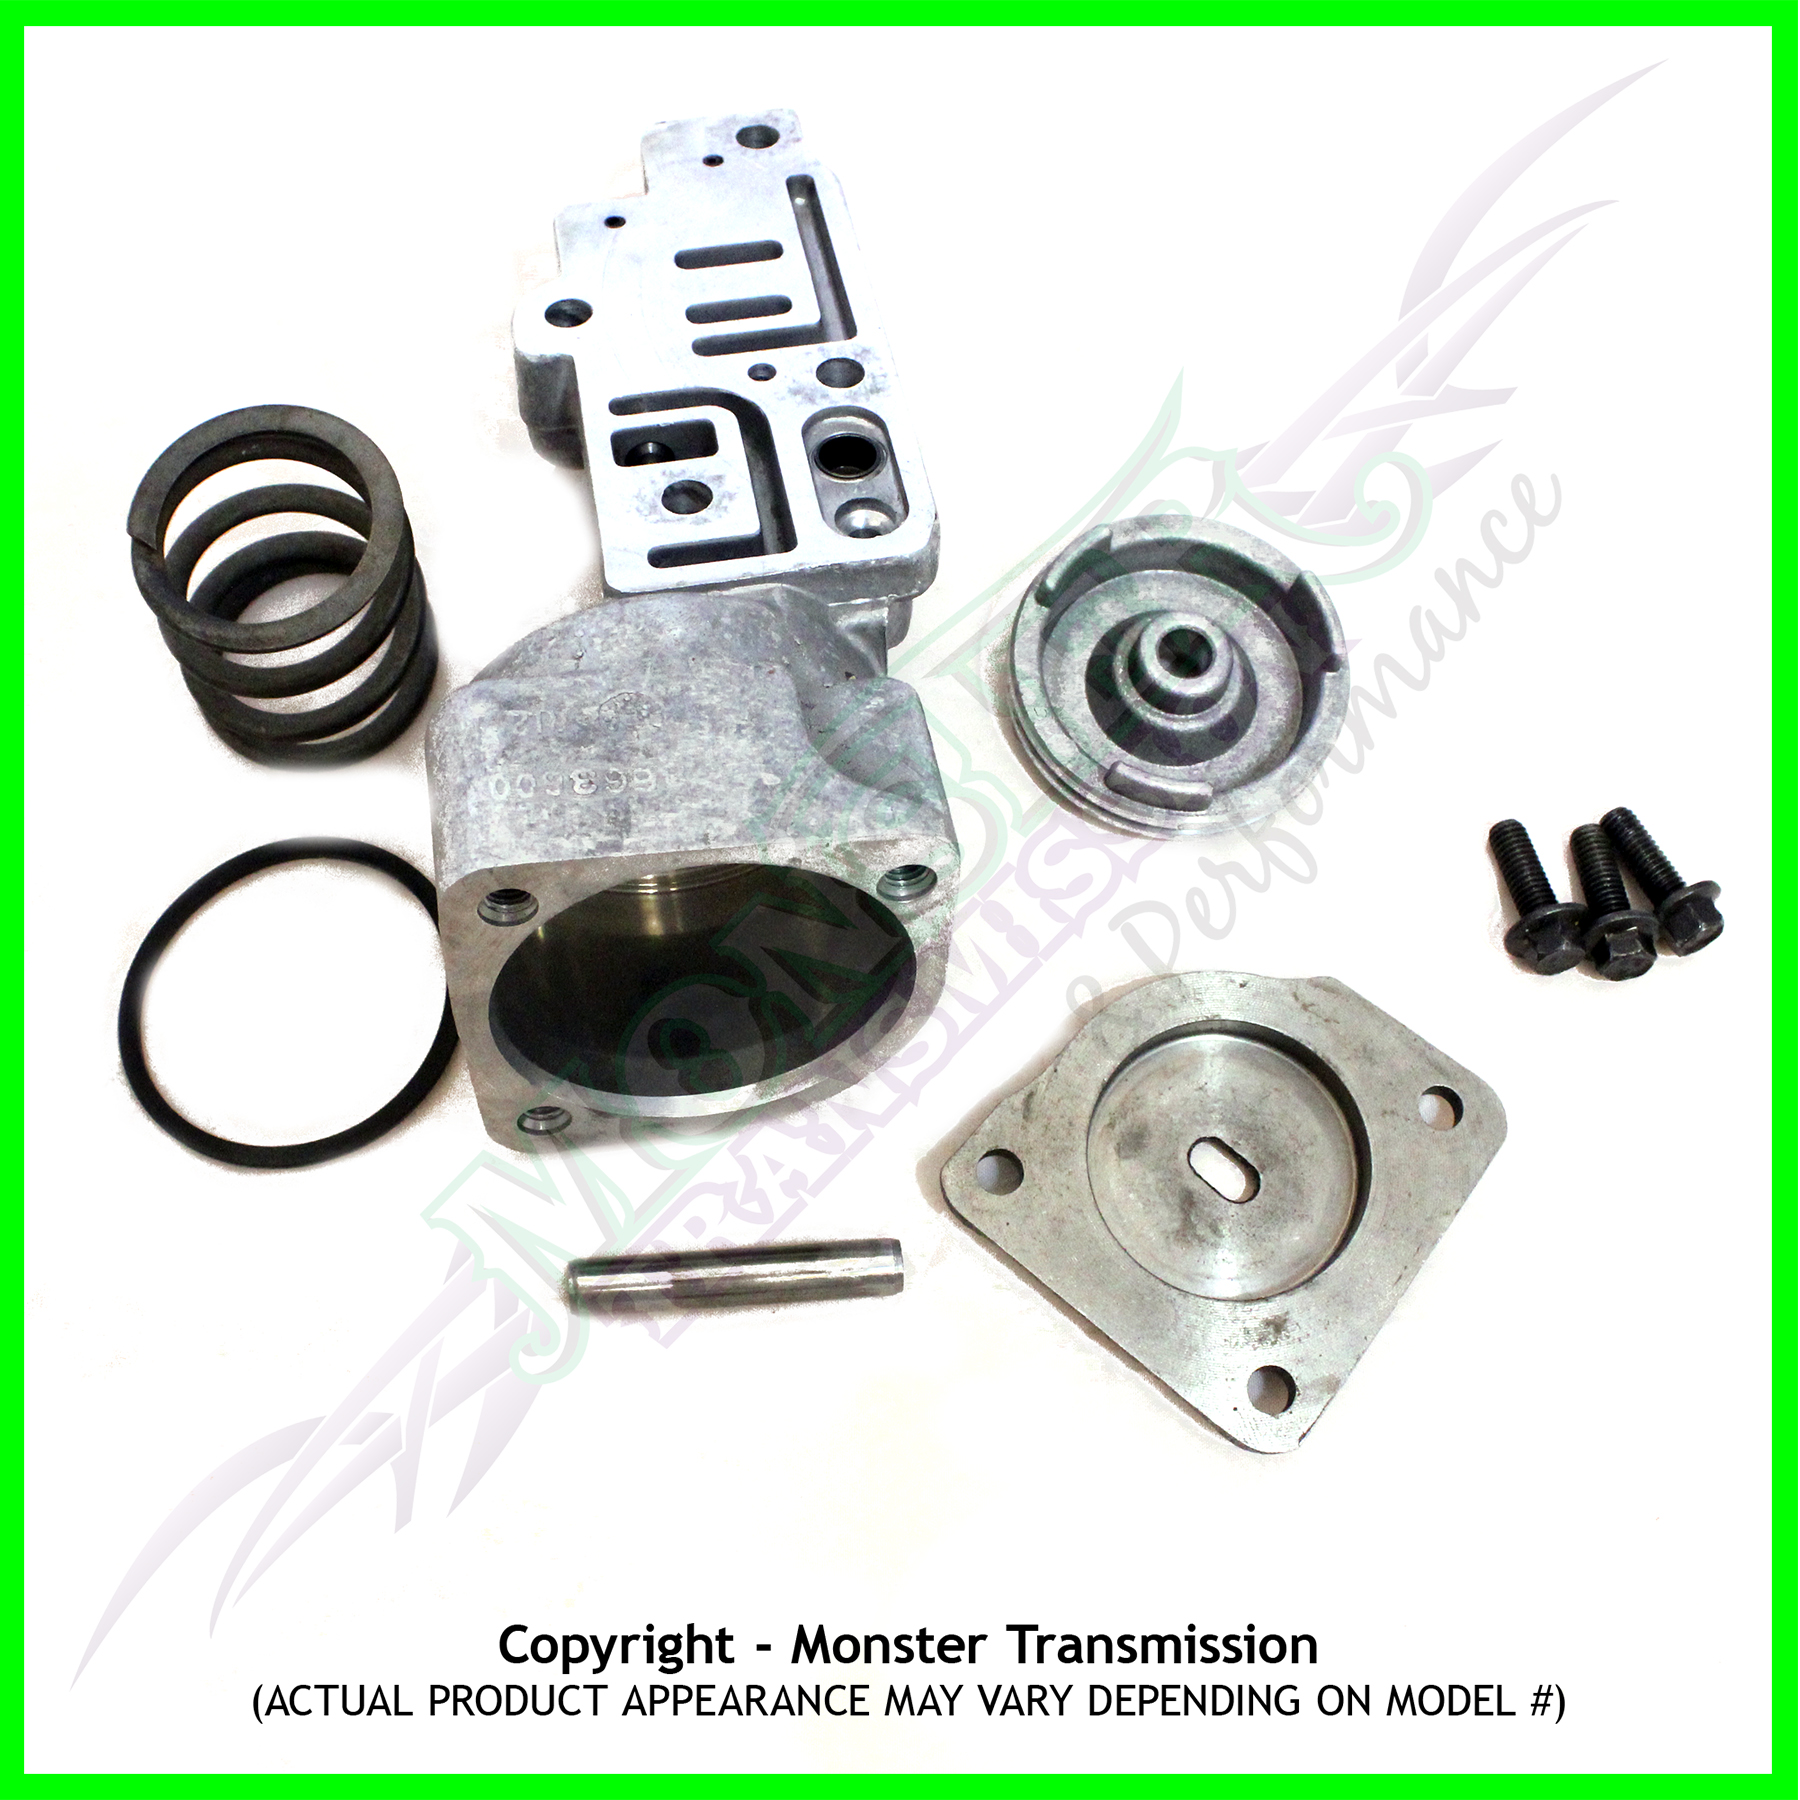 Gm 4l30e transmission manual